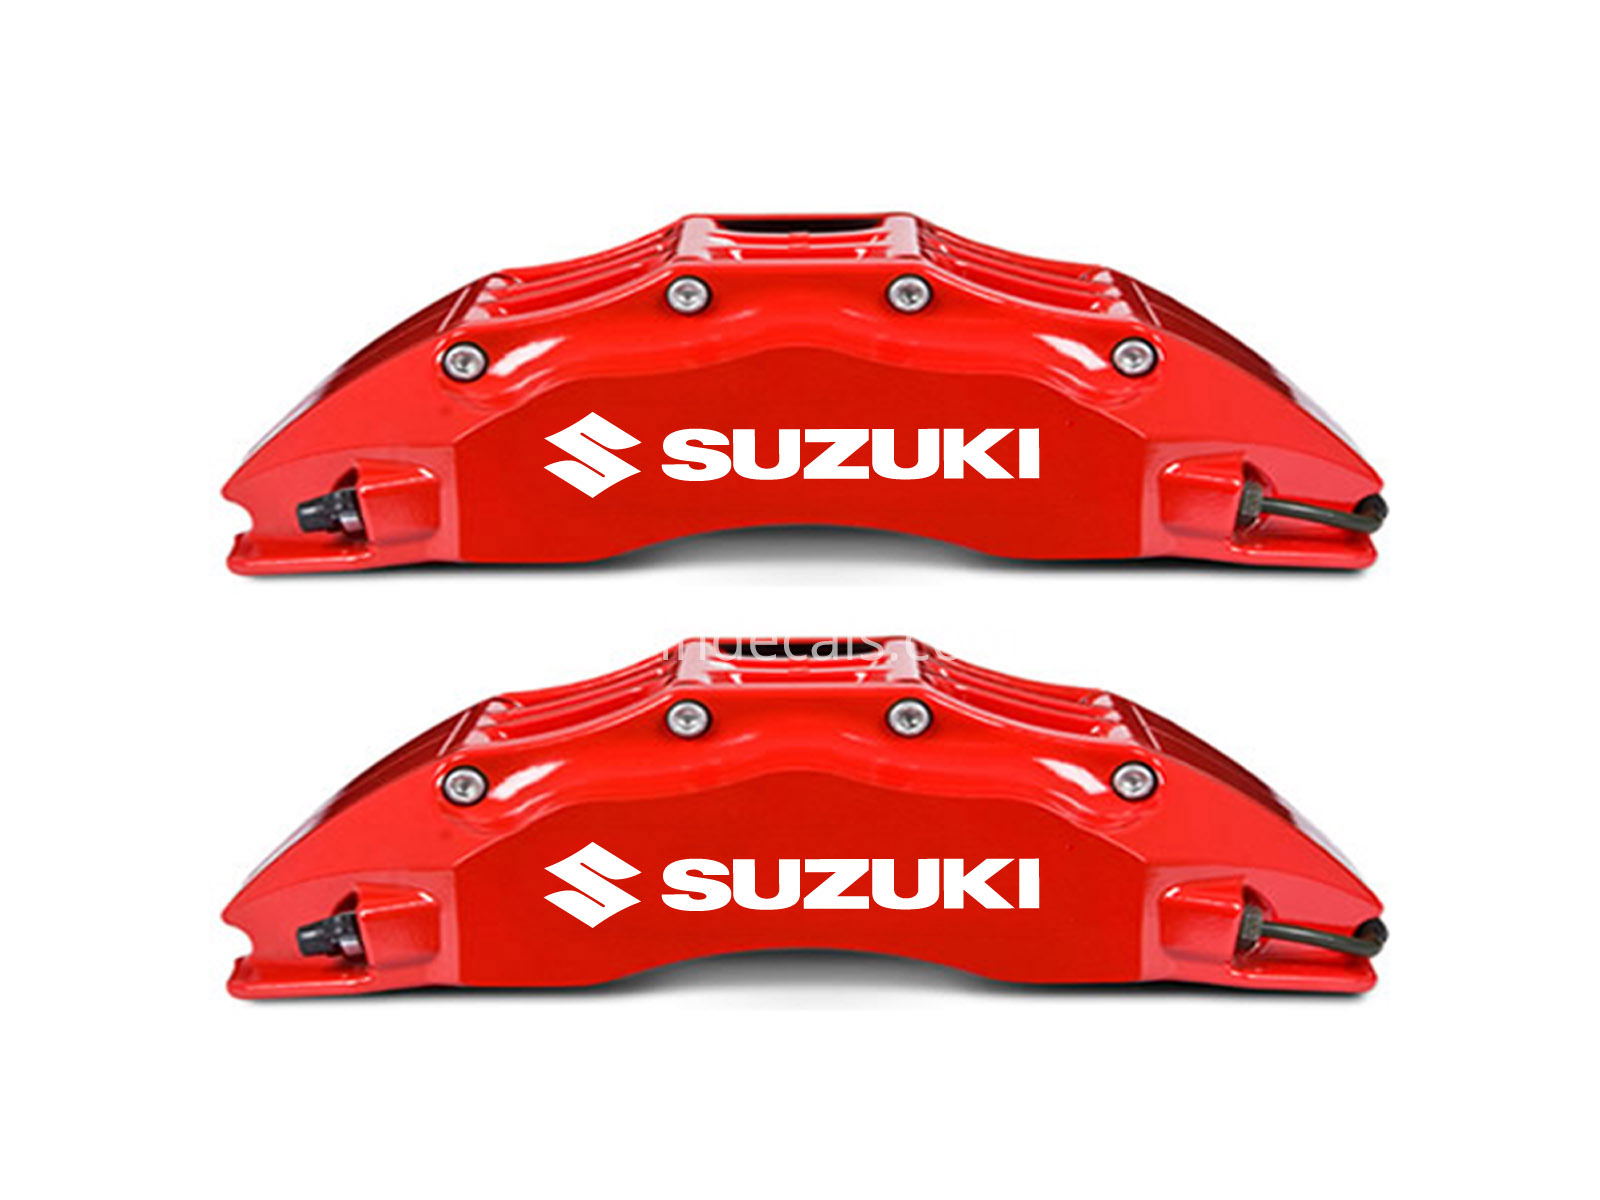 6 x Suzuki Stickers for Brakes - White